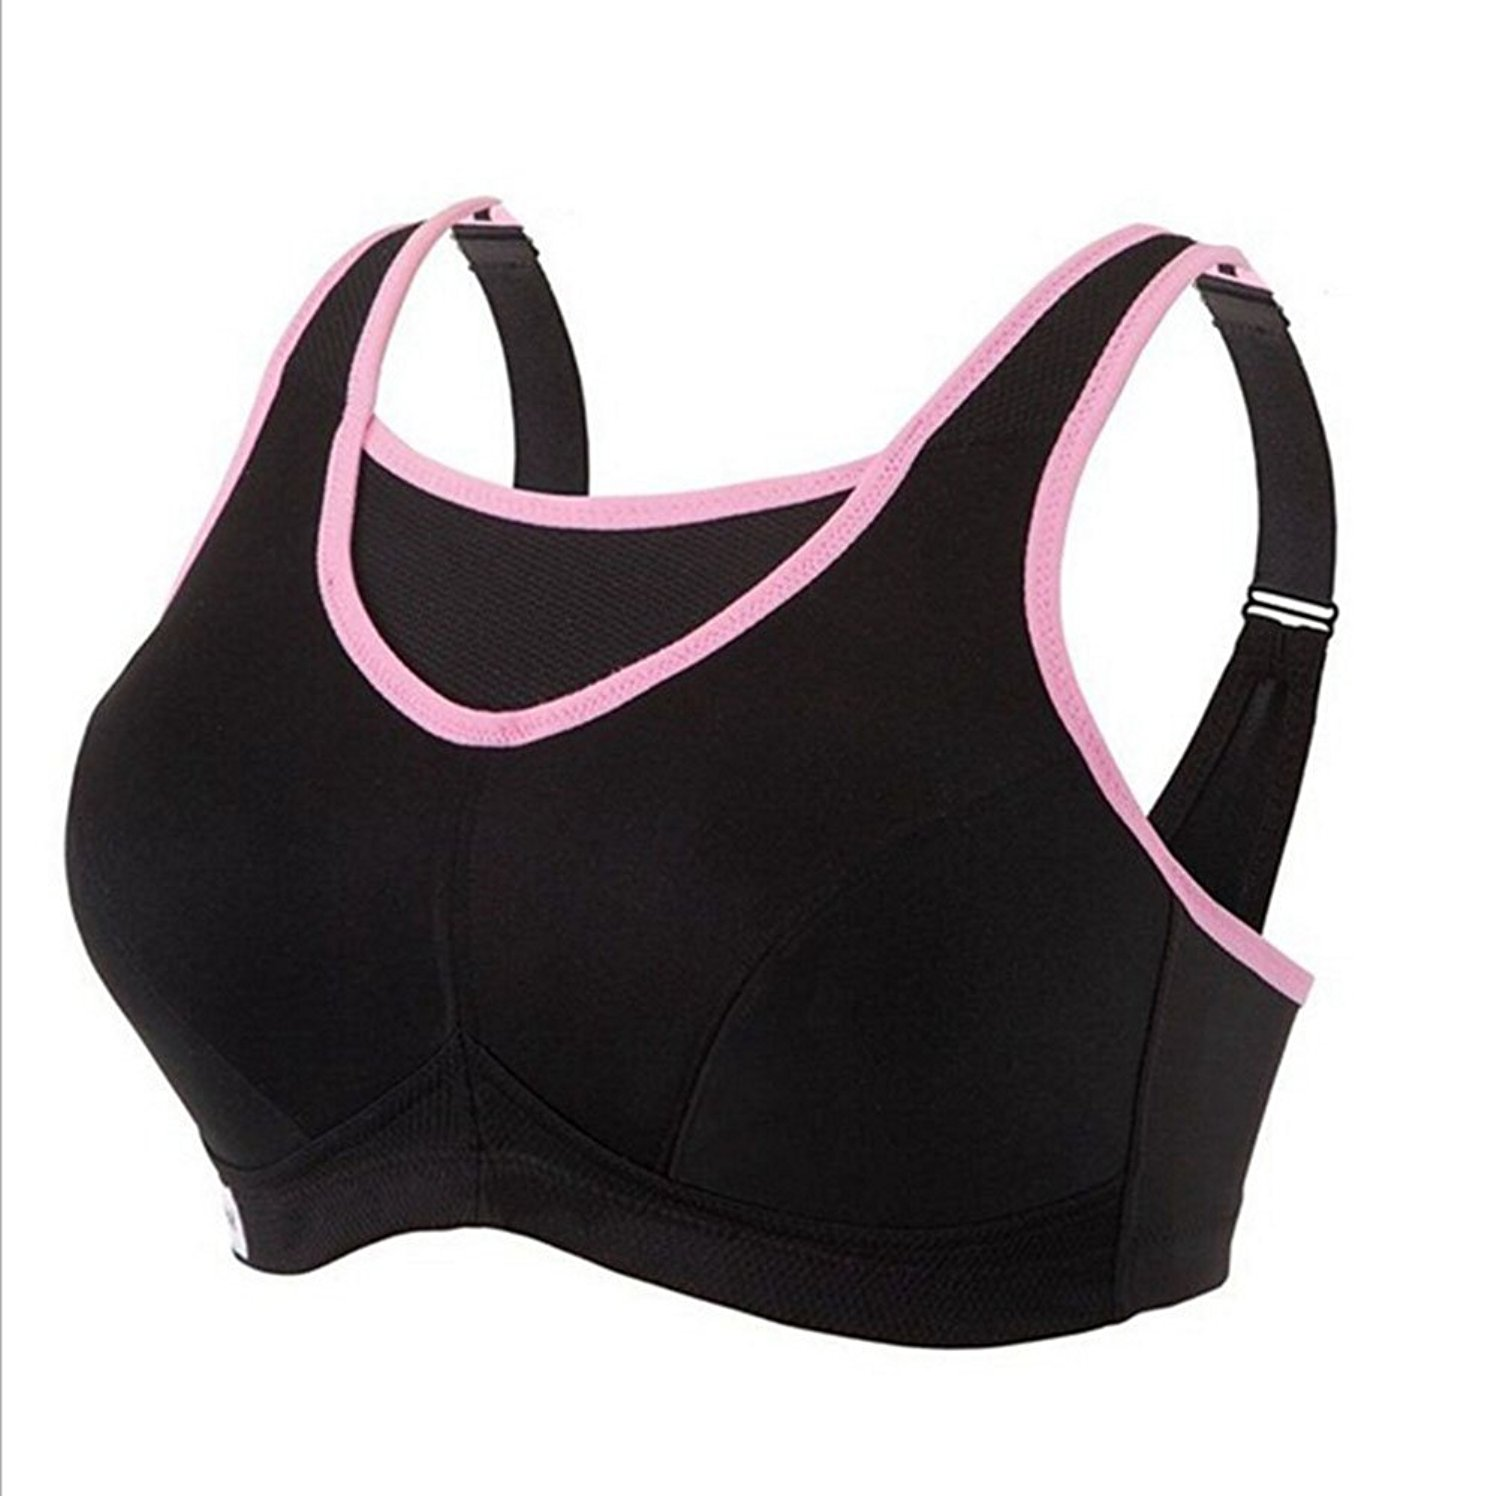 ddb73b87375969 Get Quotations · believelf Women s Sport Bras High Impact No-Bounce Plus  Size Workouts Gym Yoga Bras Activewear